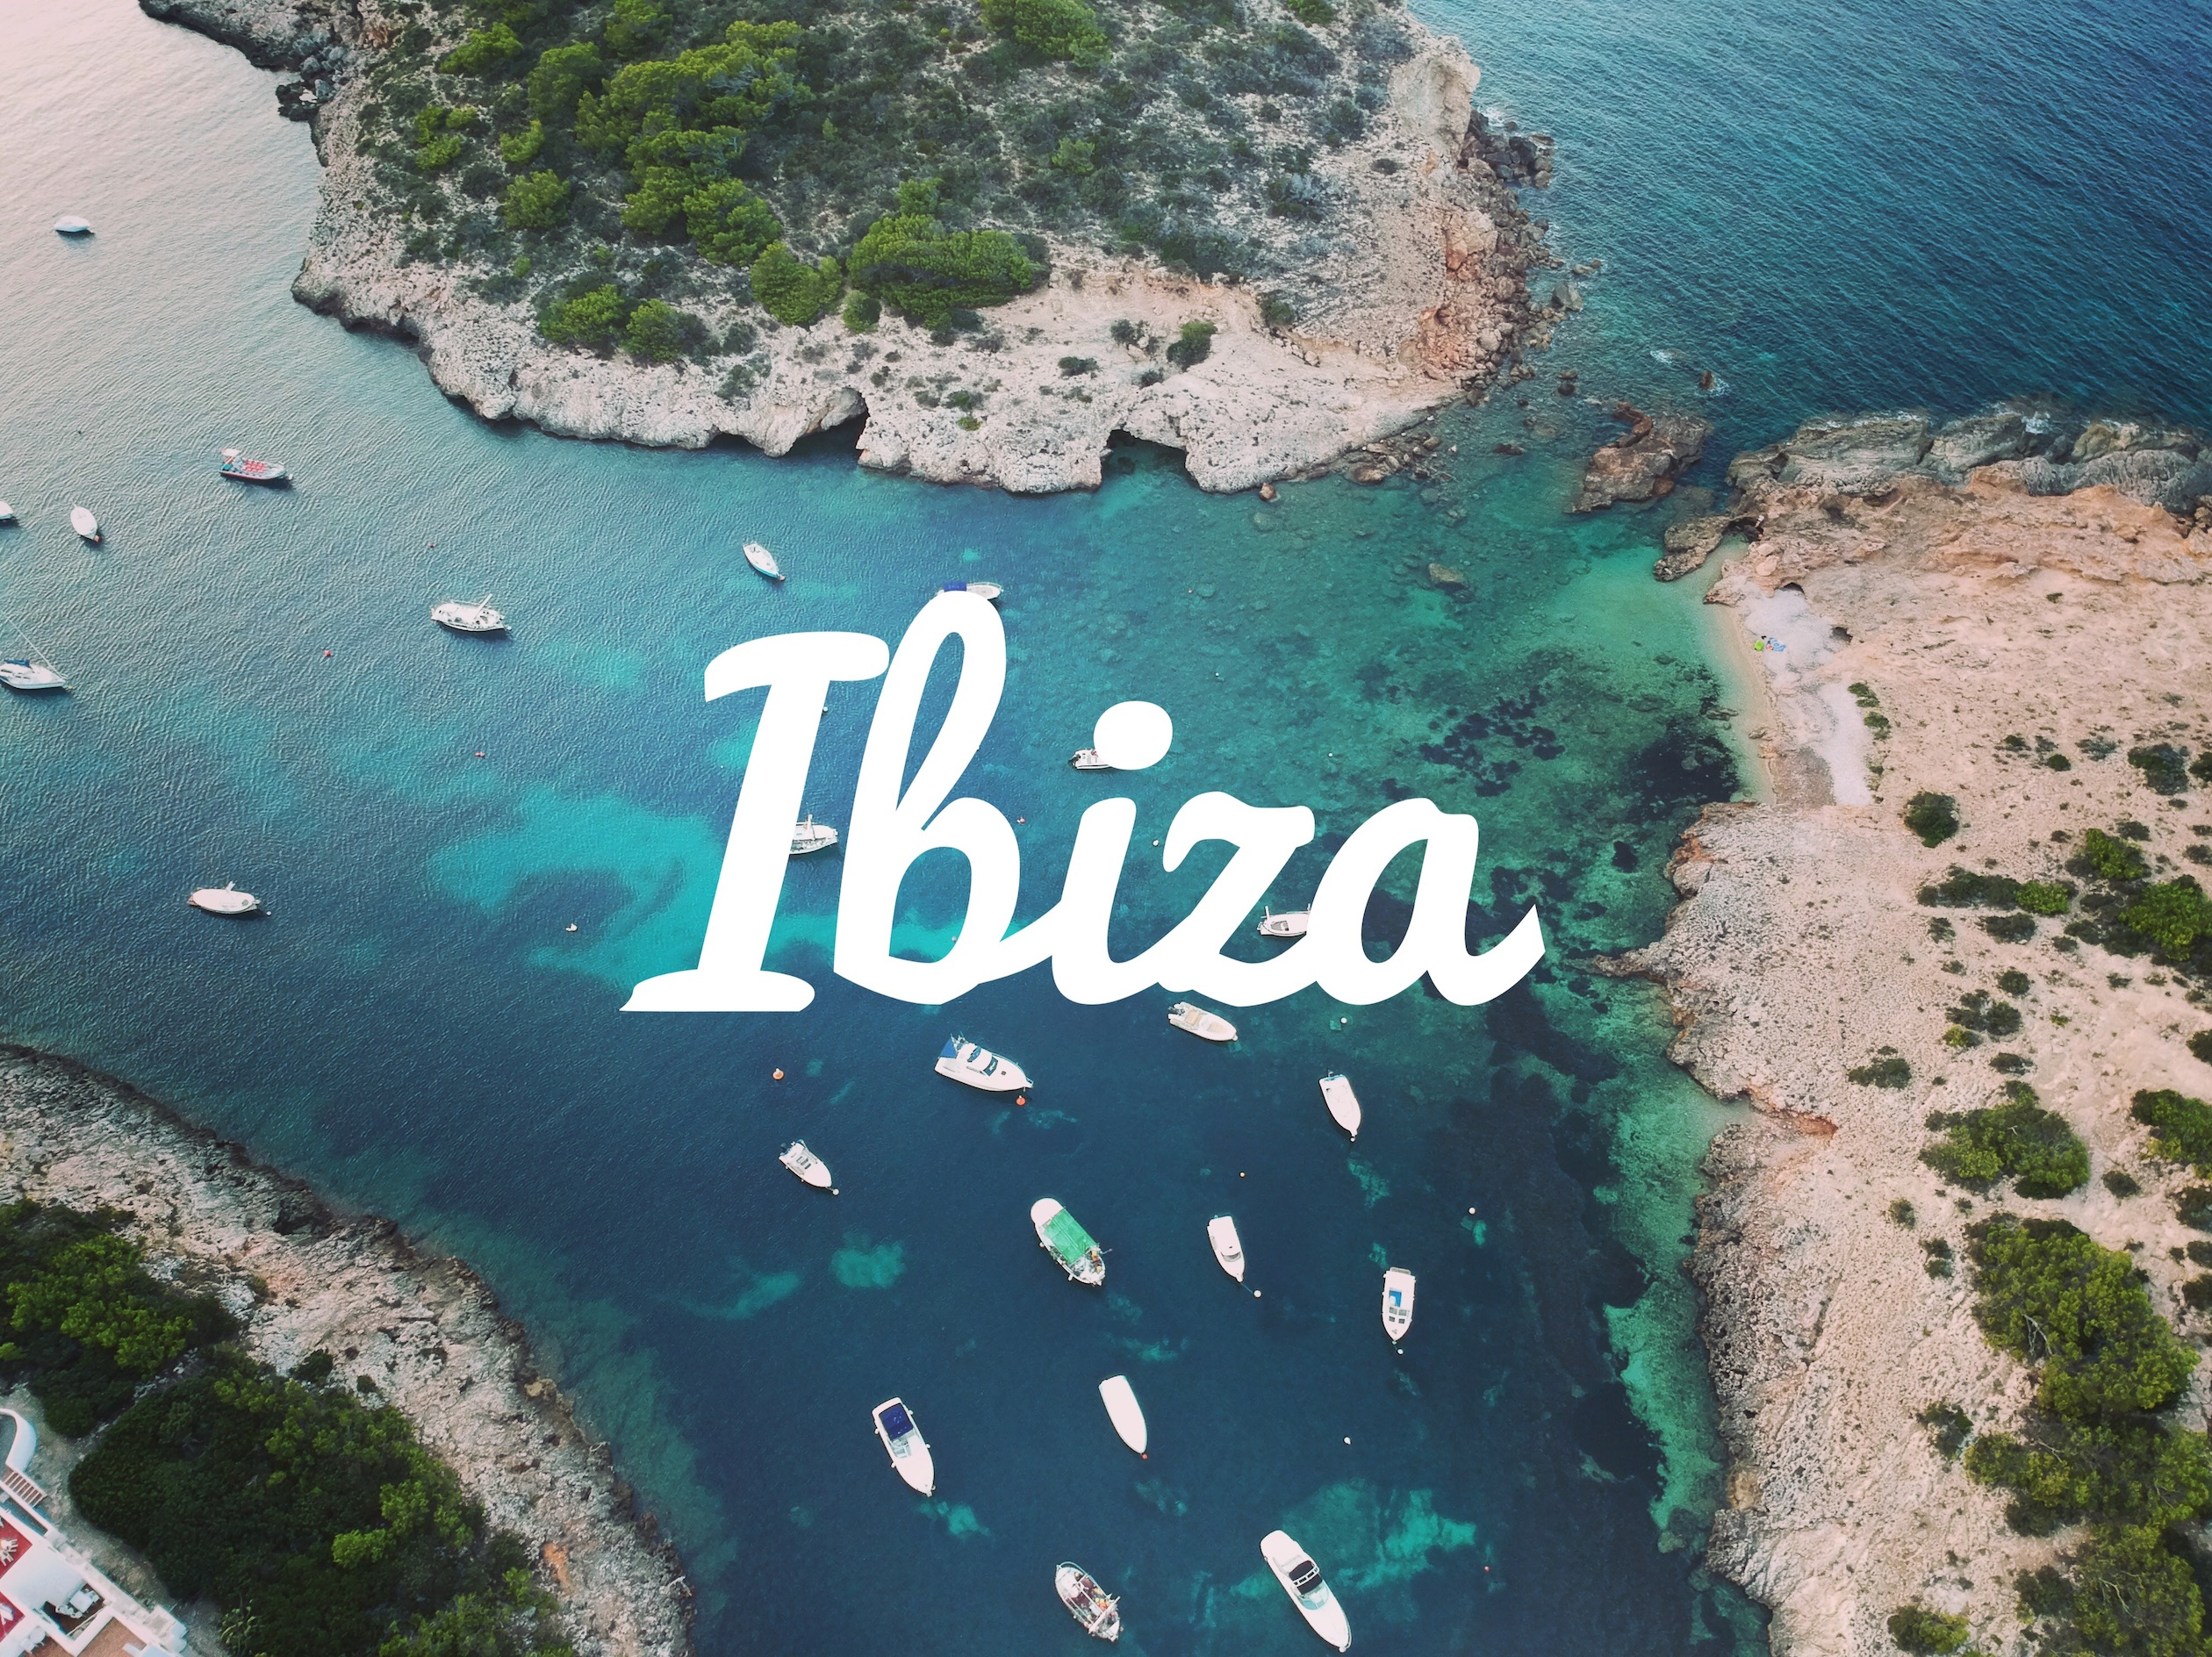 Something no one tells you about Ibiza